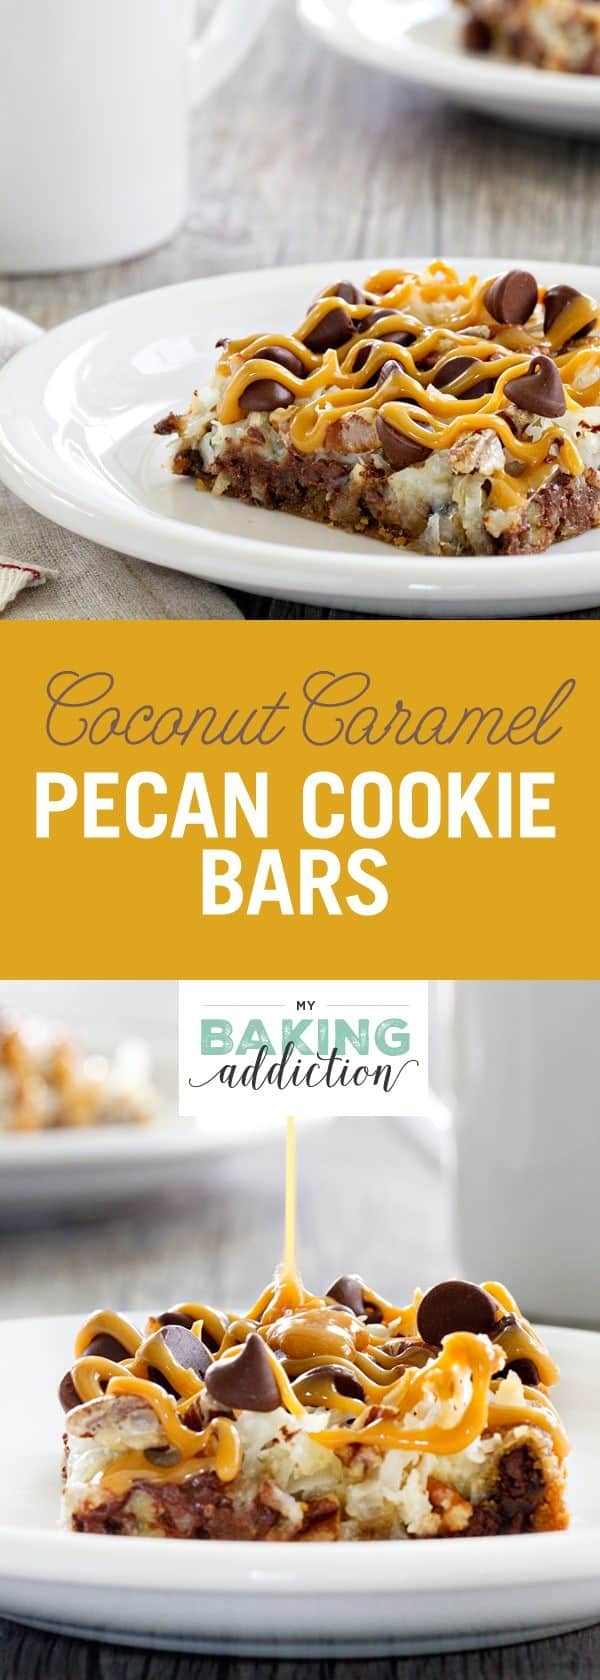 Coconut Caramel Pecan Cookie Bars are a quick and easy treat thanks to refrigerated cookie dough. Crunchy pecans, shredded coconut and gooey caramel make them incredible!